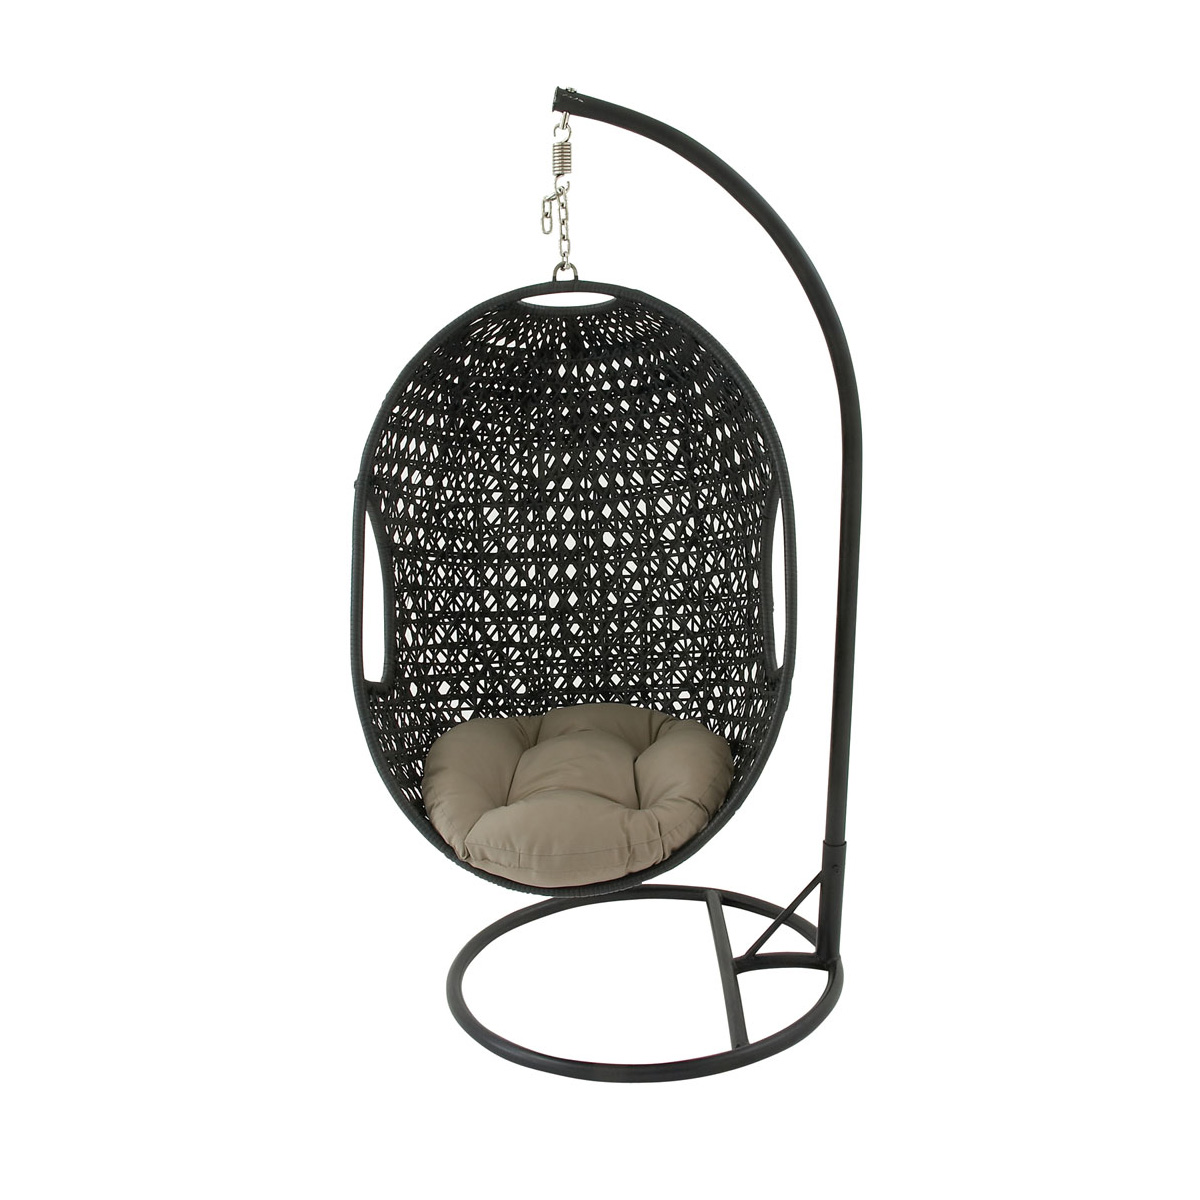 Hanover Outdoor Wicker Rattan Hanging Egg Chair Swing With Round Cushion And Mosaic Pattern In